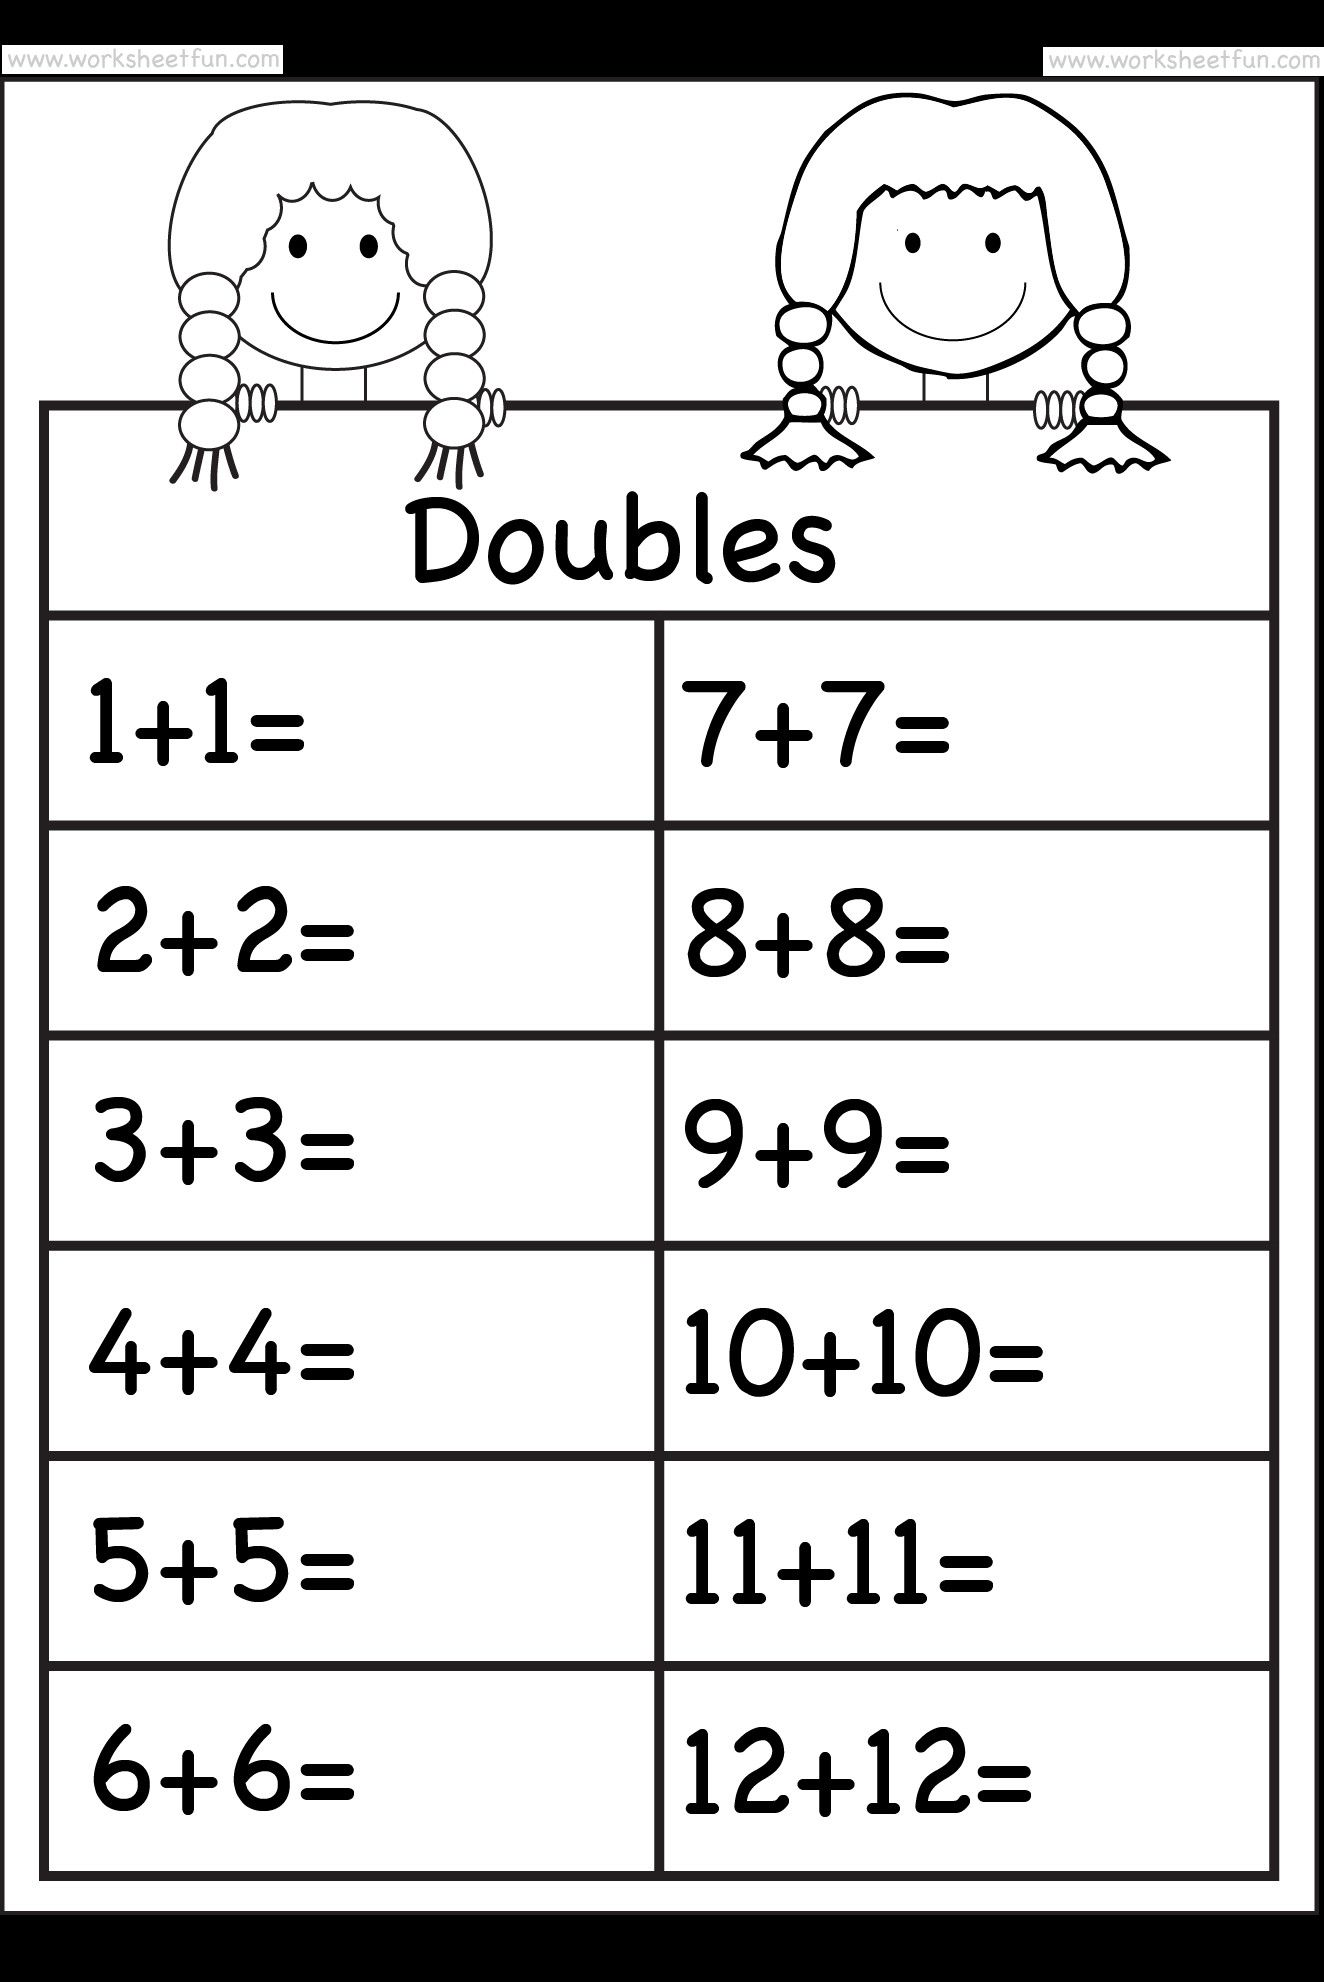 5 Doubles Math Worksheet To 12 In